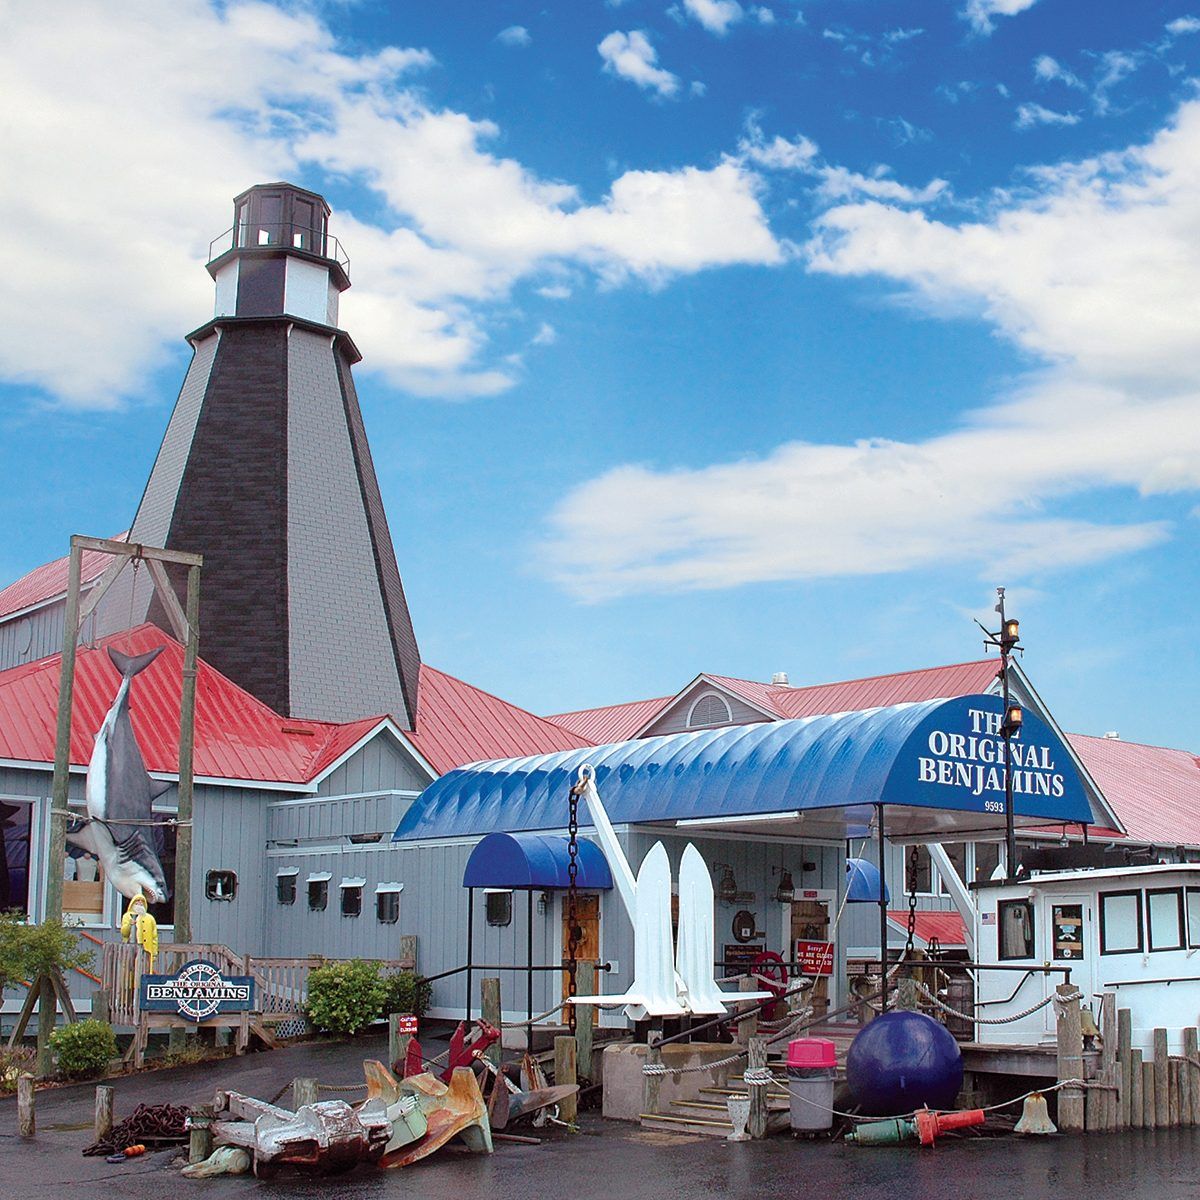 South Carolina: The Original Benjamin's Calabash Seafood, Myrtle Beach